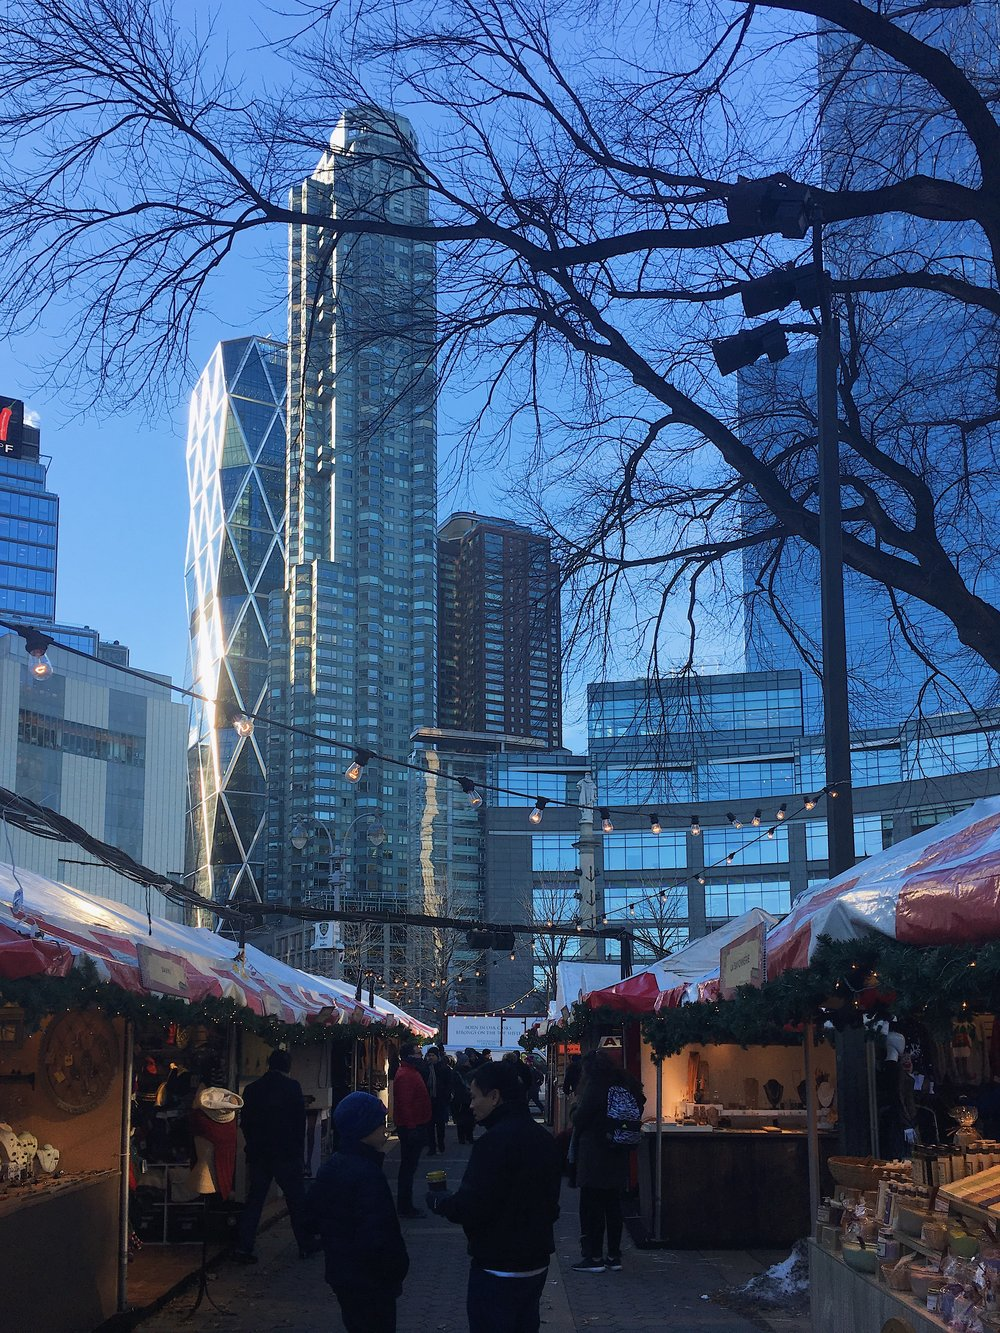 Columbus Circle holiday market.